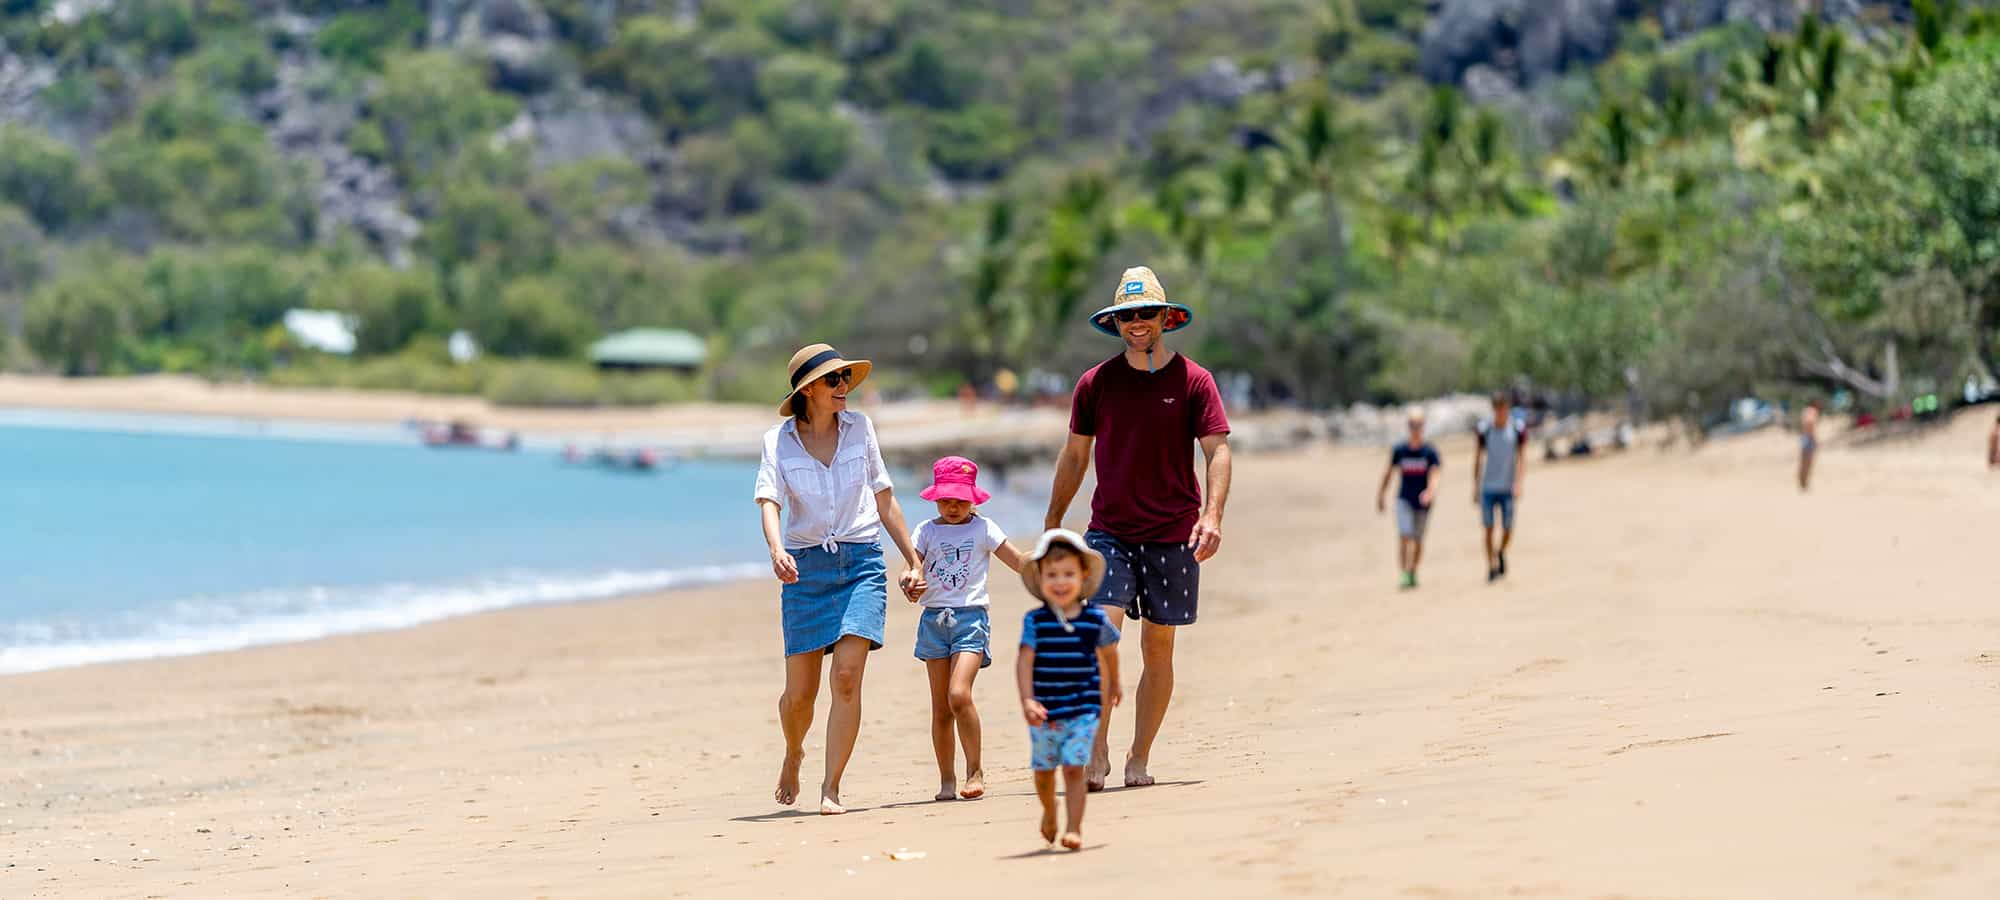 The Top 10 Things To Do On Magnetic Island With Your Family